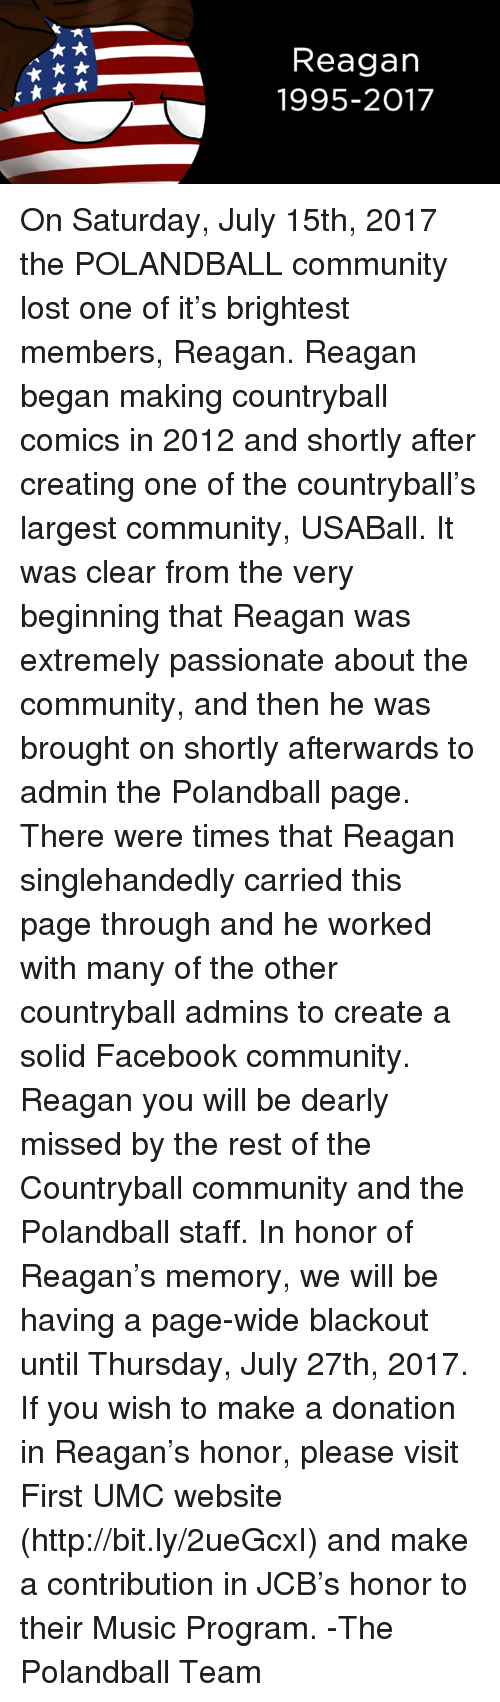 jcb: Reagan  1995-2017 On Saturday, July 15th, 2017 the POLANDBALL community lost one of it's brightest members, Reagan.   Reagan began making countryball comics in 2012 and shortly after creating one of the countryball's largest community, USABall.  It was clear from the very beginning that Reagan was extremely passionate about the community, and then he was brought on shortly afterwards to admin the Polandball page. There were times that Reagan singlehandedly carried this page through and he worked with many of the other countryball admins to create a solid Facebook community.   Reagan you will be dearly missed by the rest of the Countryball community and the Polandball staff.   In honor of Reagan's memory, we will be having a page-wide blackout until Thursday, July 27th, 2017.  If you wish to make a donation in Reagan's honor, please visit First UMC website (http://bit.ly/2ueGcxI) and make a contribution in JCB's honor to their Music Program.    -The Polandball Team